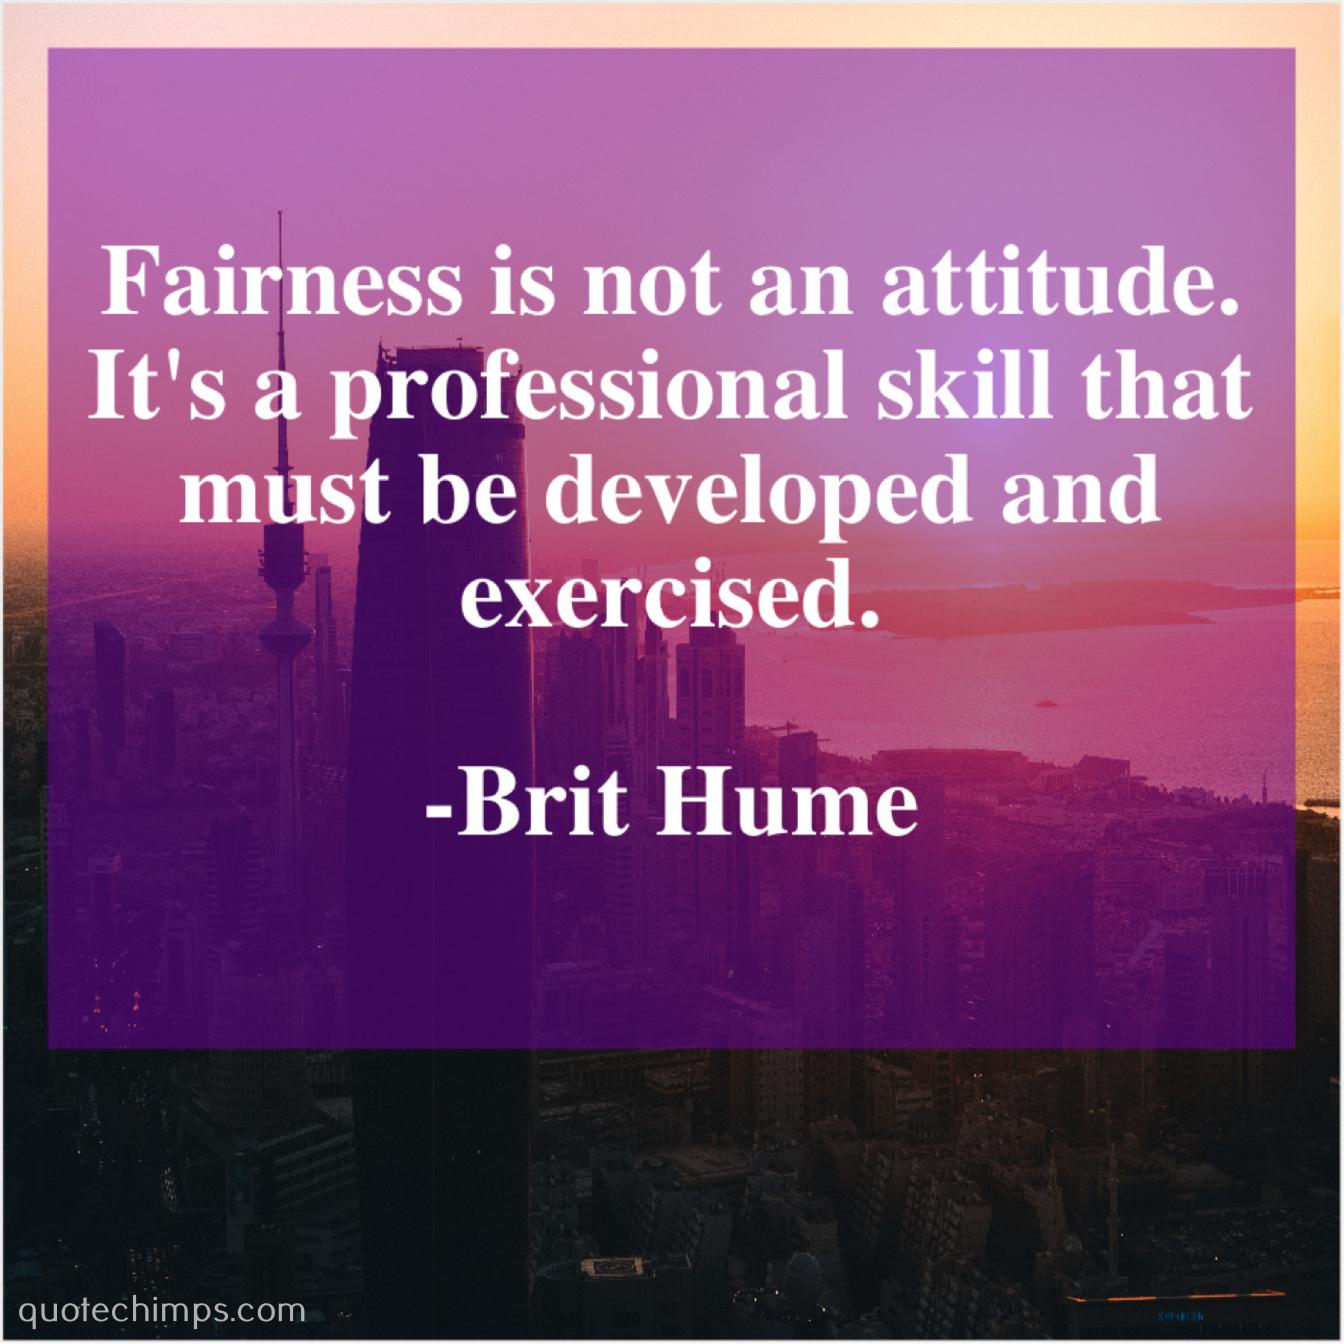 Brit Hume Fairness Is Not An Attitude